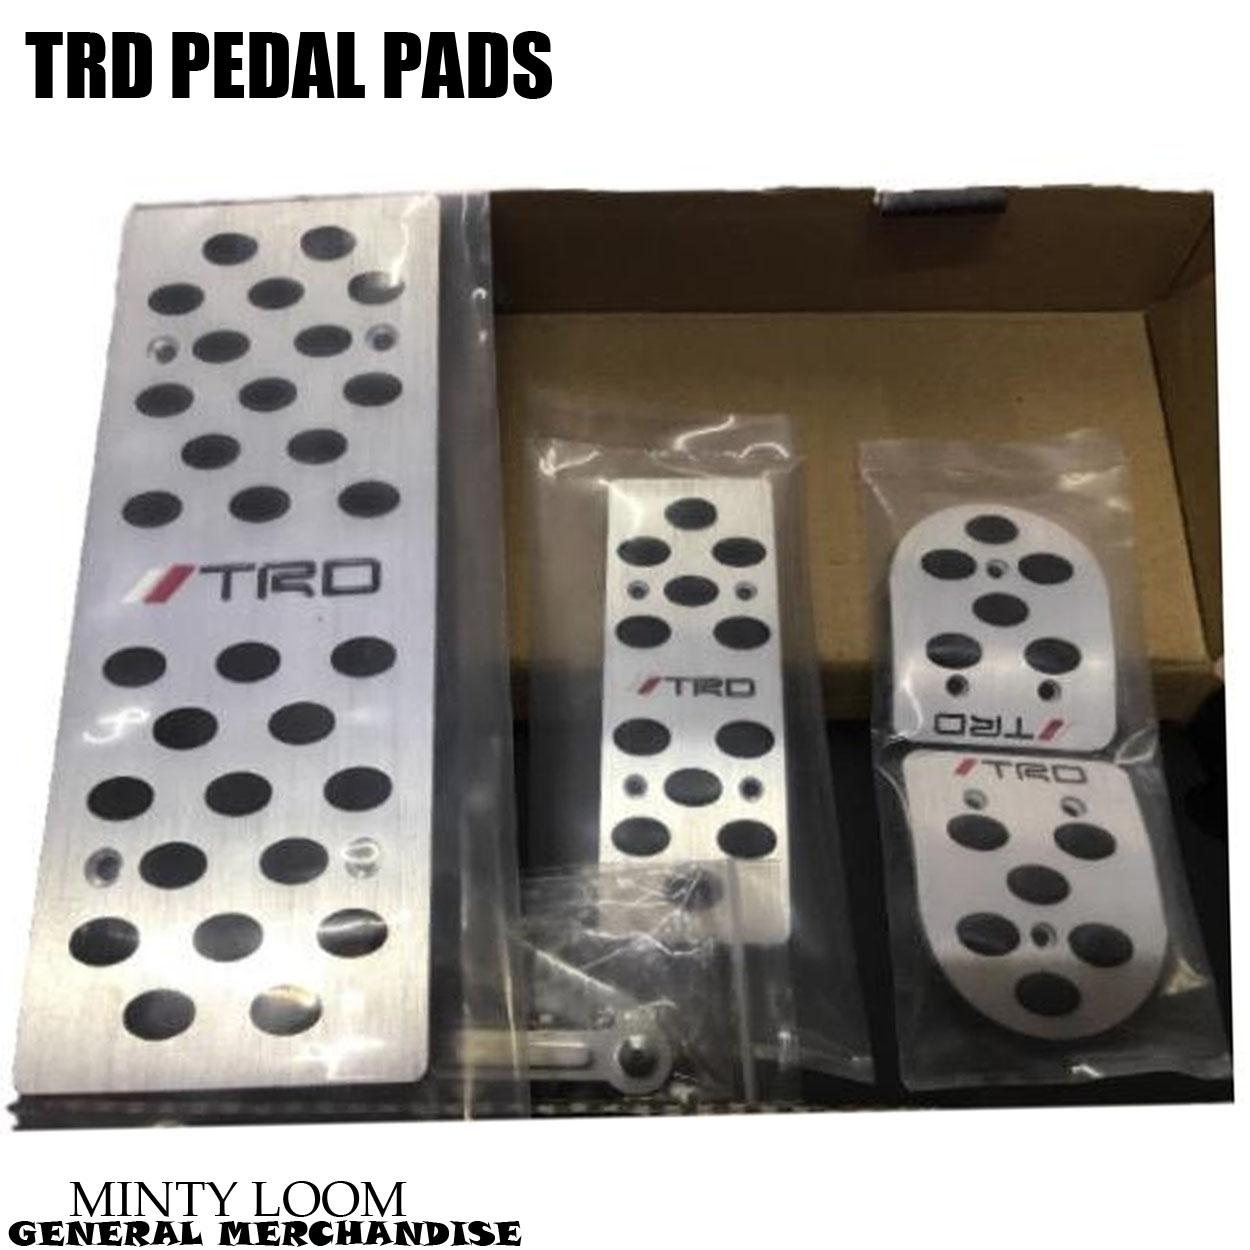 Trd Pedal Pads For Manual Transmission By Minty Loom General Merchandise.